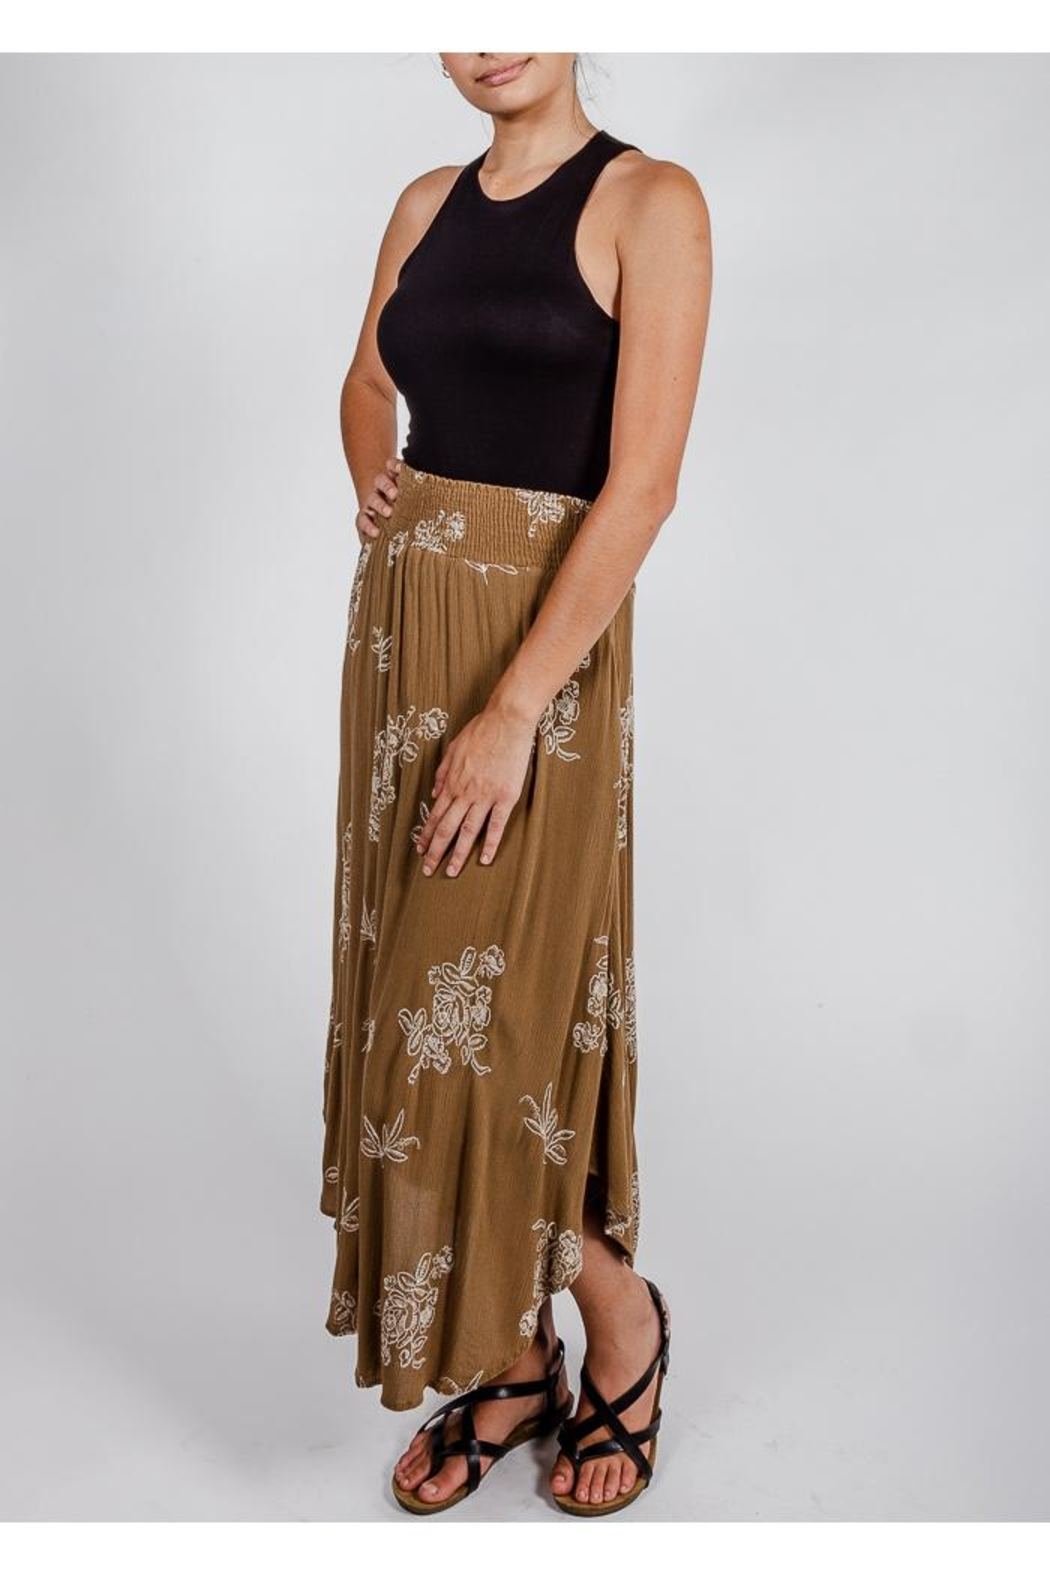 Final Touch Olive Floral Midi-Skirt - Side Cropped Image